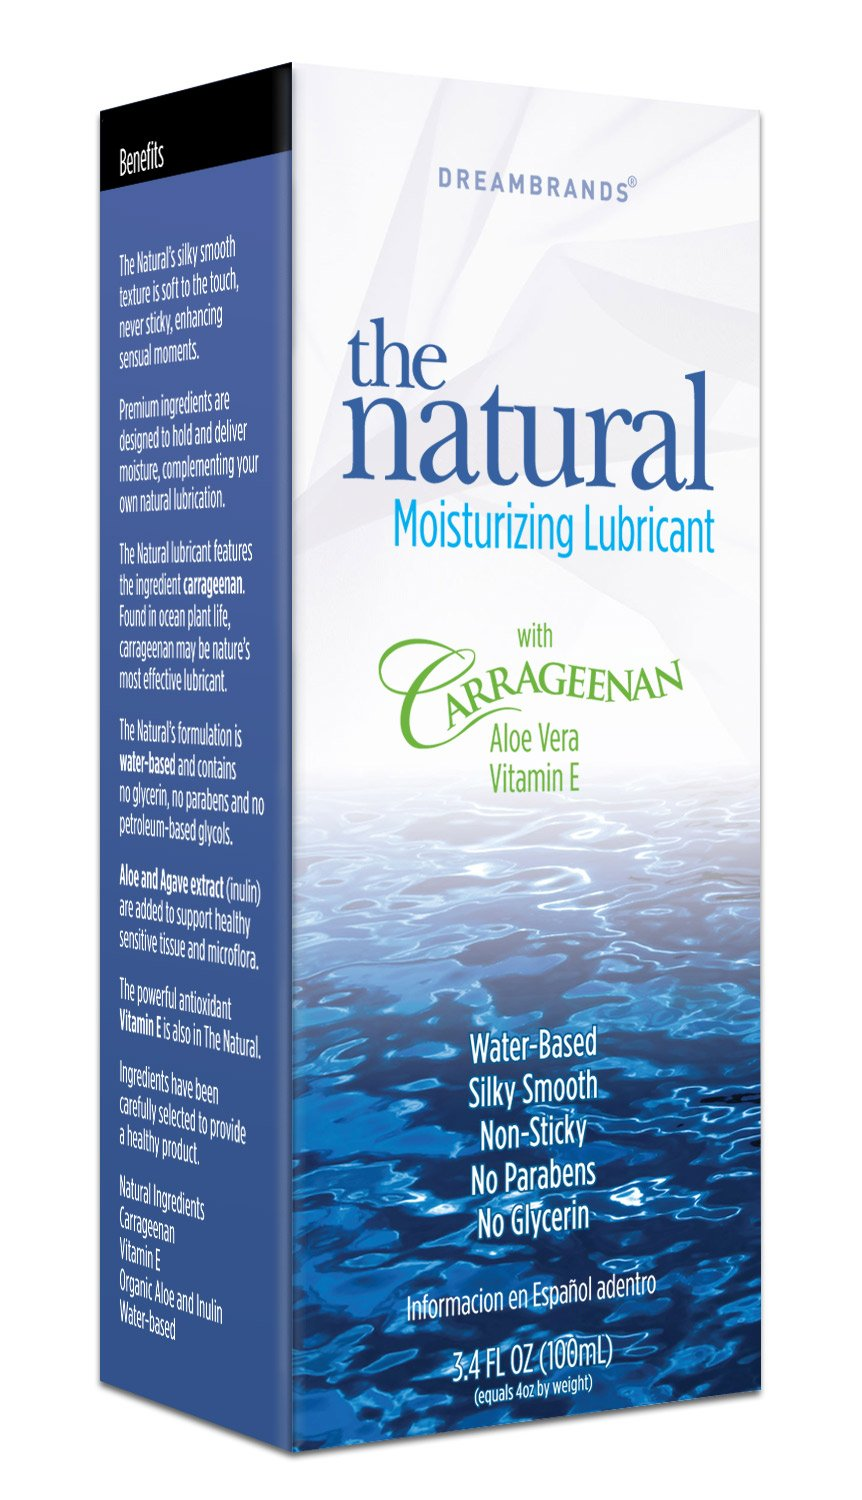 Carrageenan Gently Natural Personal Lubricant 3.4 Oz